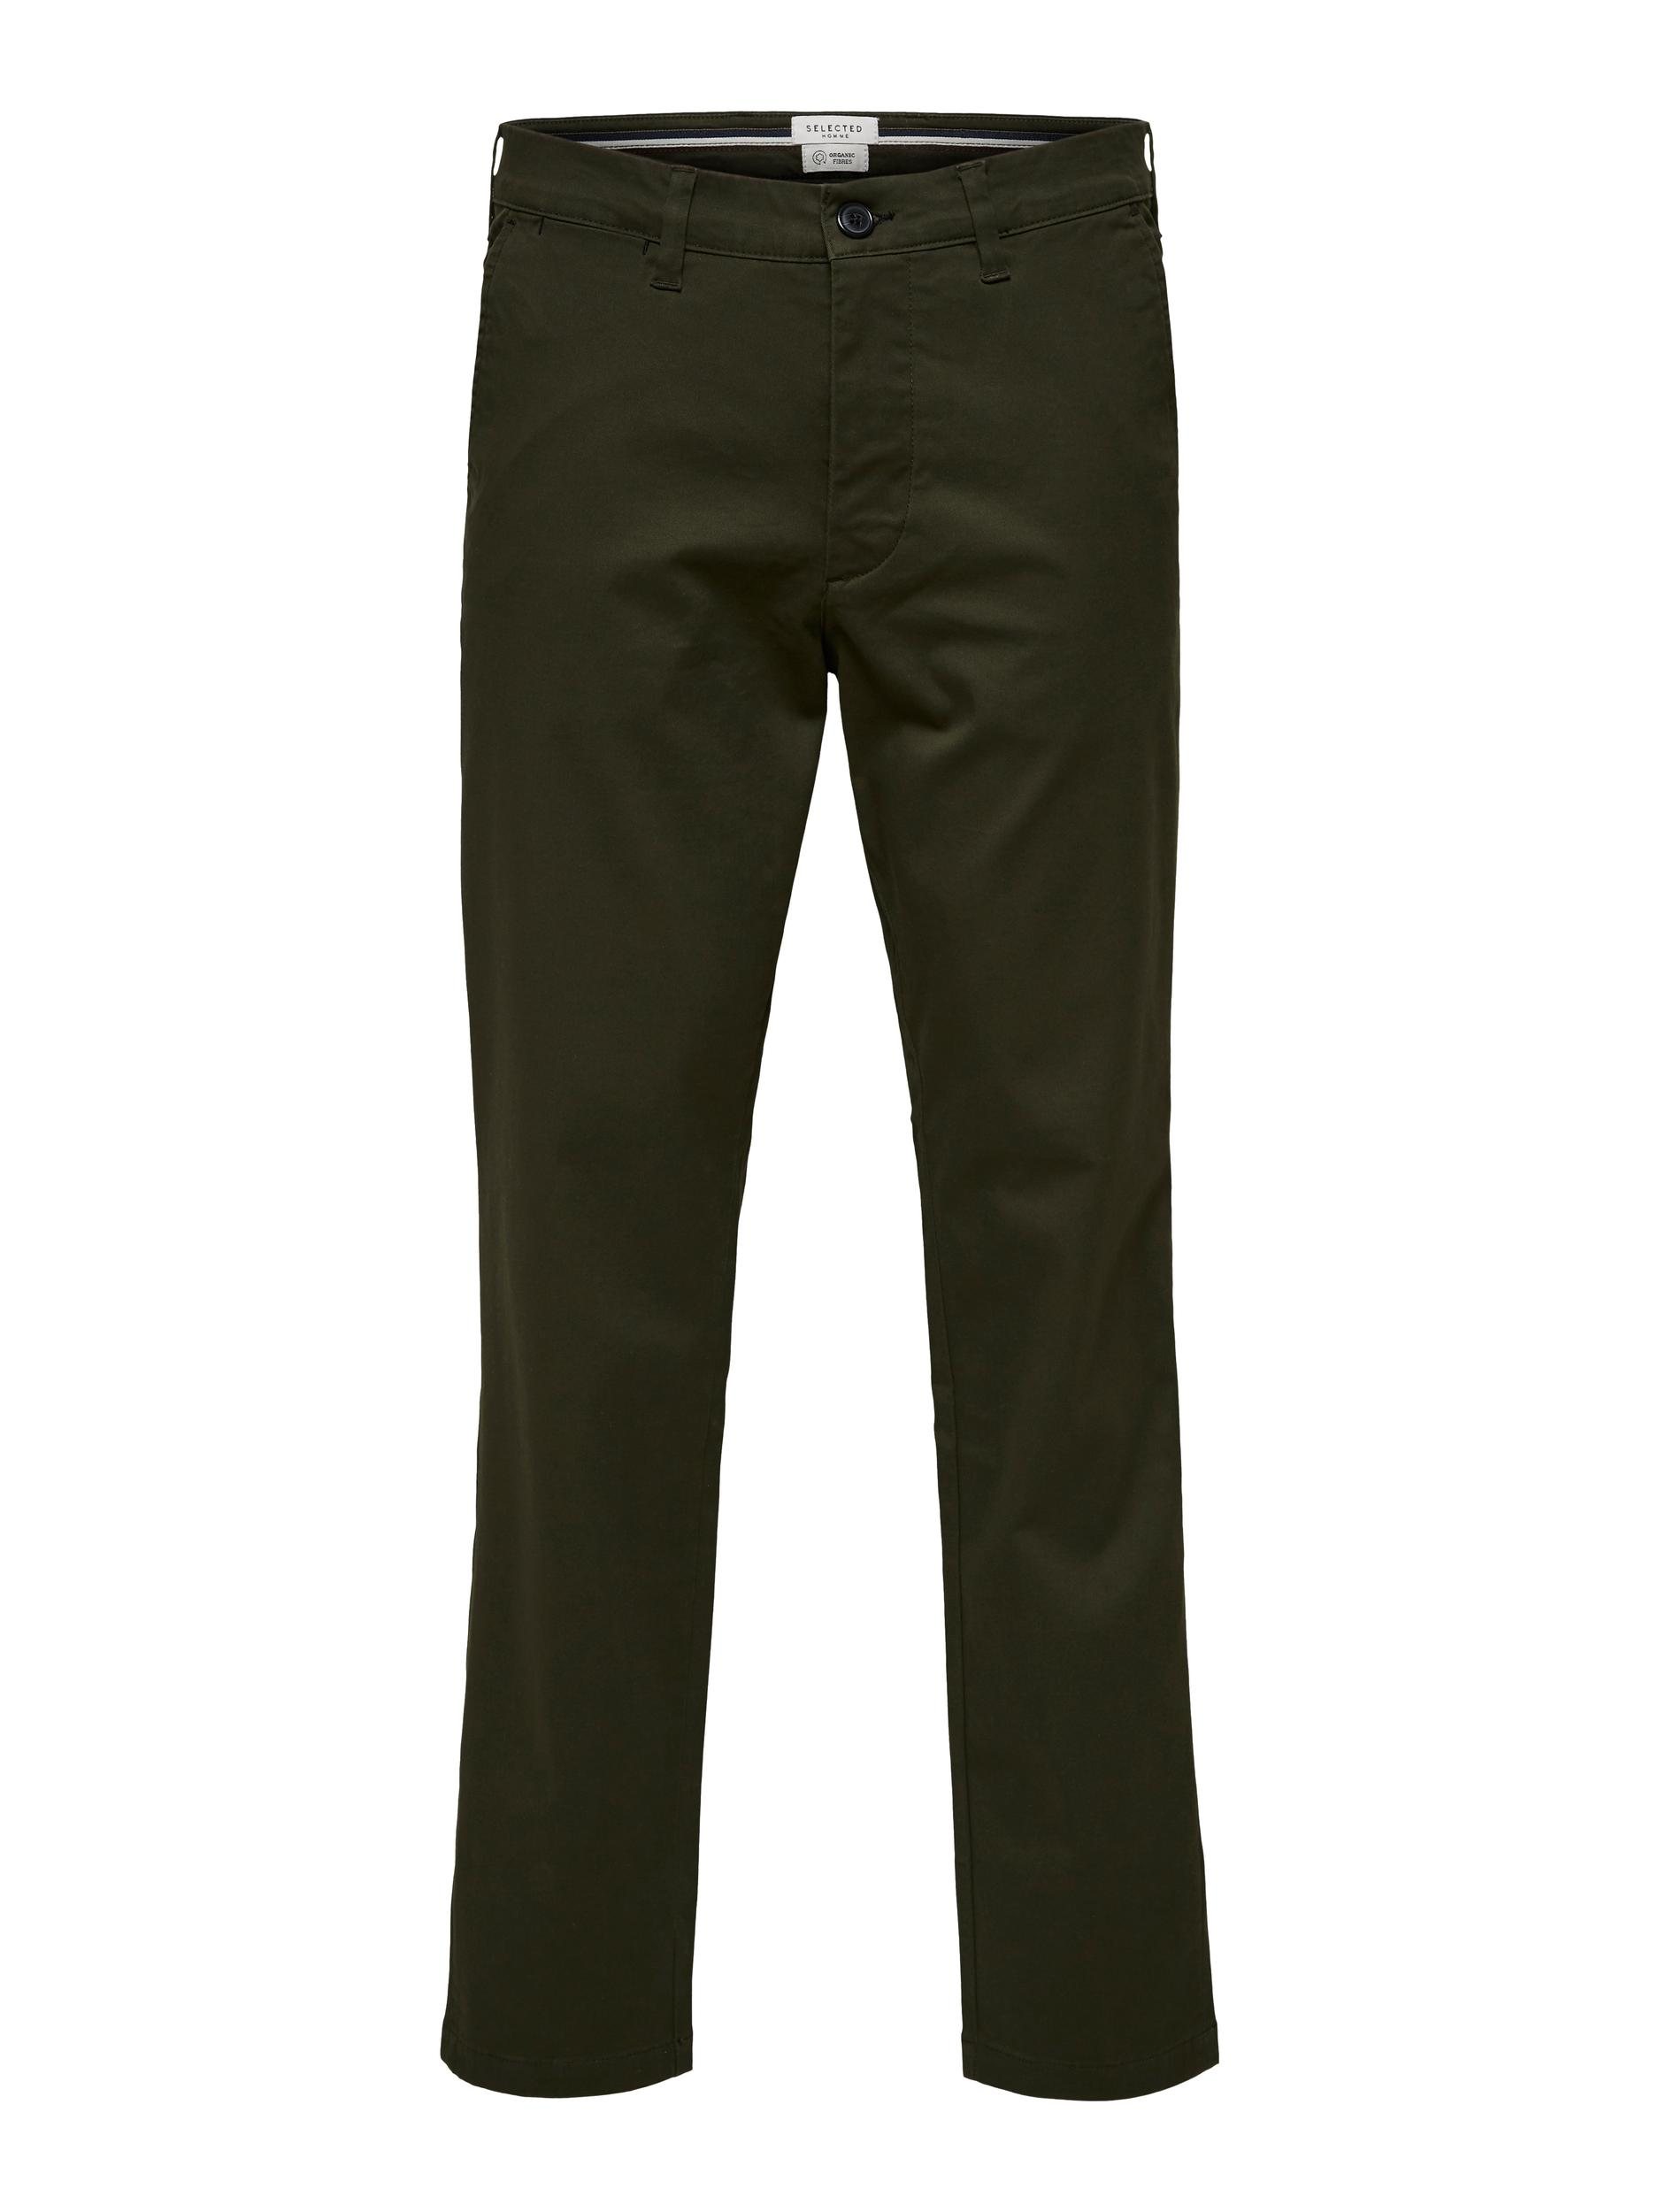 Selected Homme Miles Slim Flex chinos, forest night, 31/32